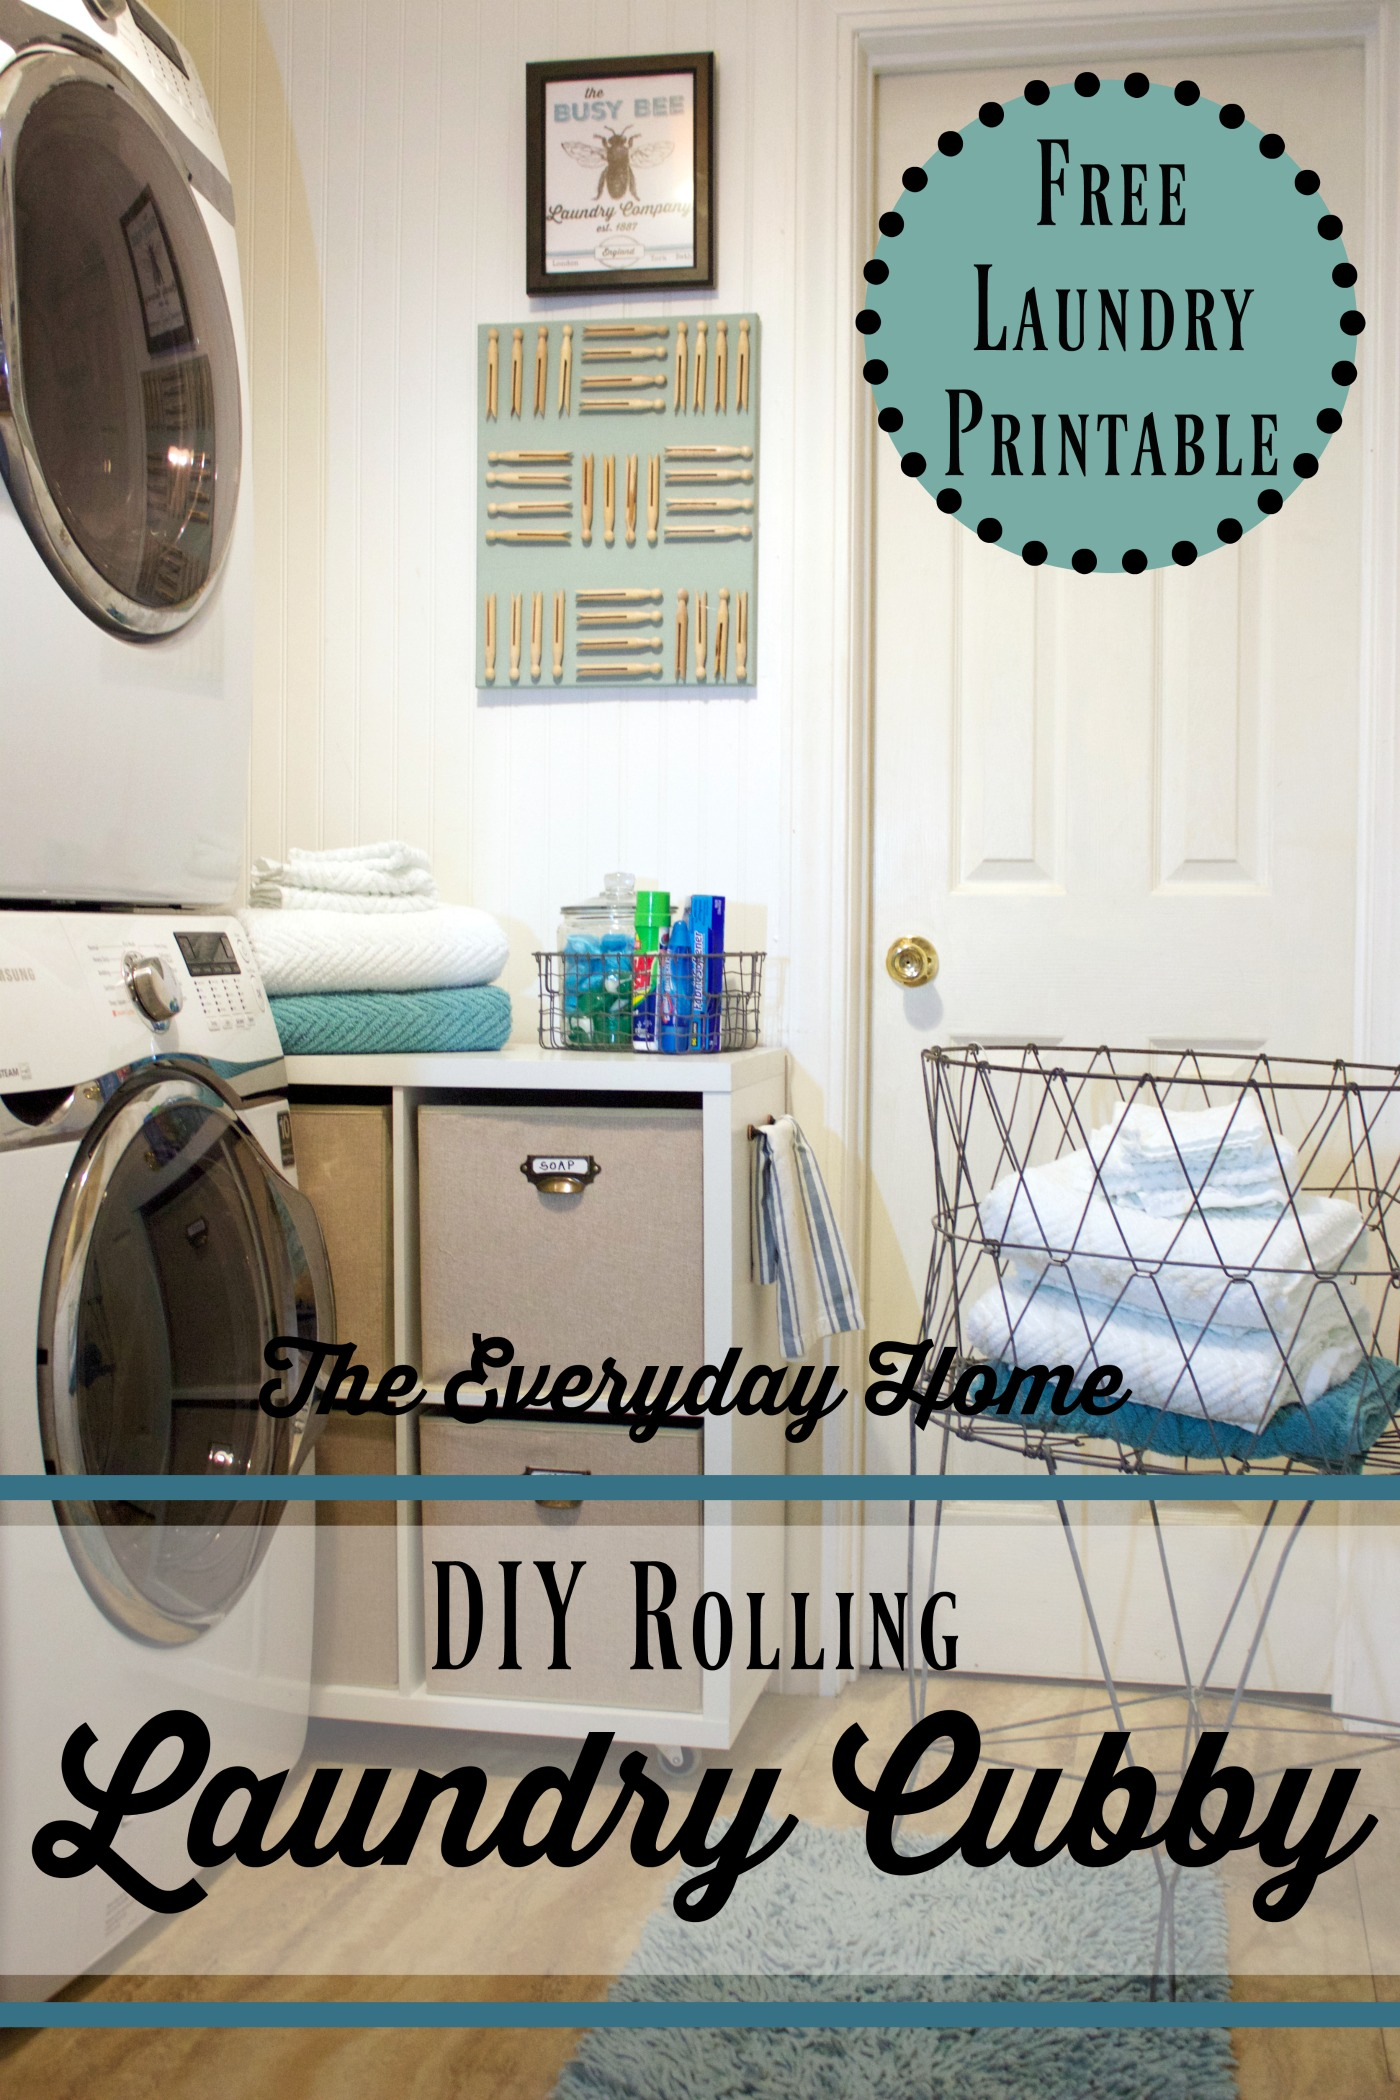 diy-laundry-room-cubby-on-wheels | The Everyday Home | www.everydayhomeblog.com